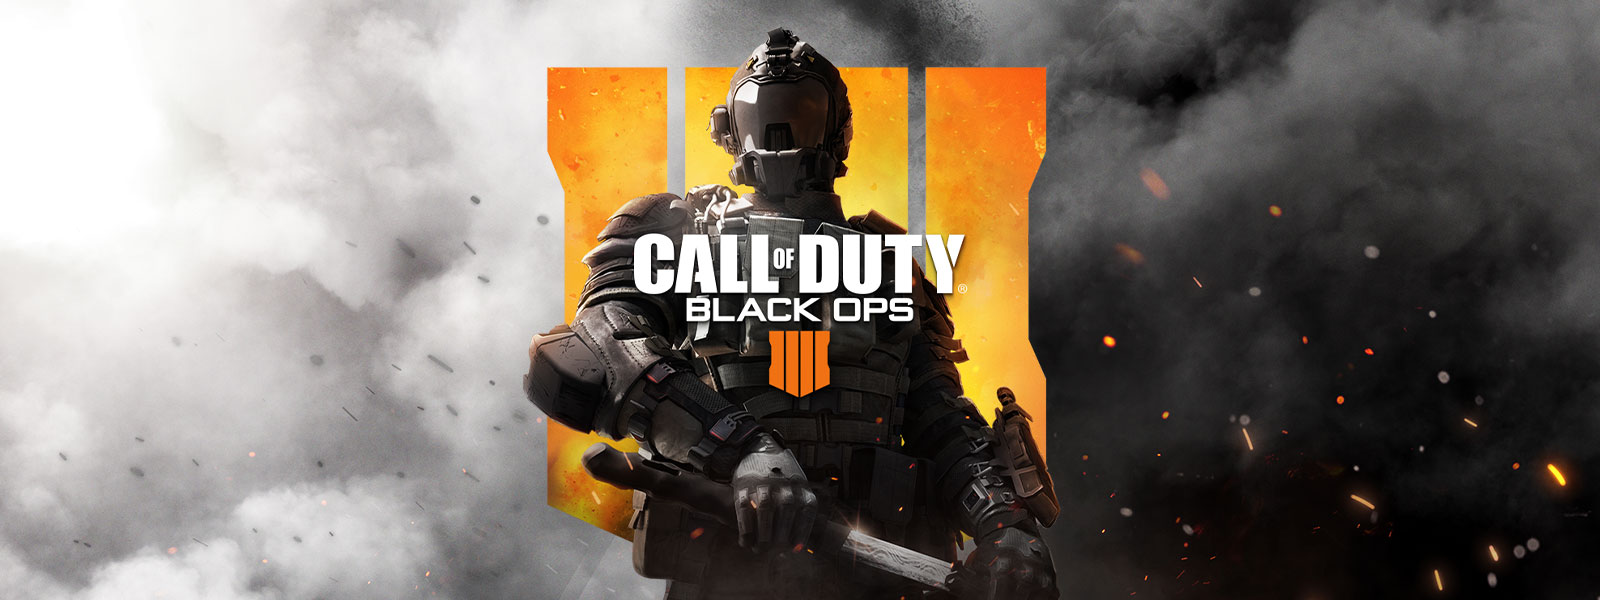 Spectre Rising Edition, Call of Duty: Black Ops 4 logo, character in full military gear with a sword in front of a smoky grey background and large Call of Duty: Black Ops 4 logo